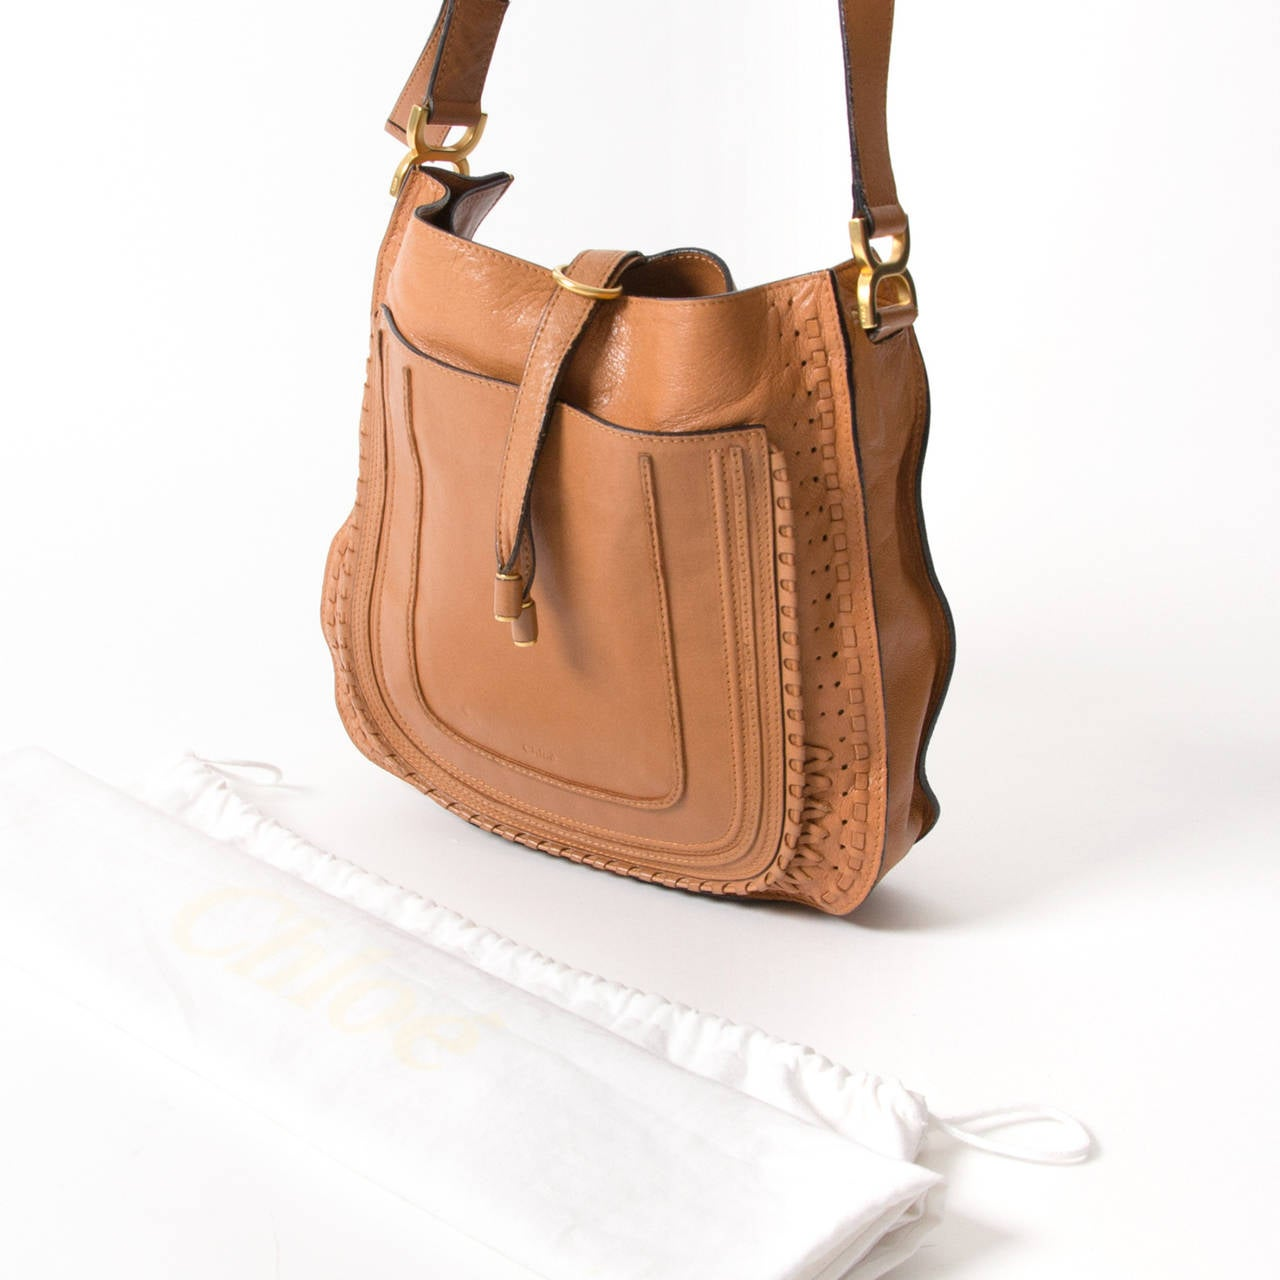 chloe saddle messenger bag